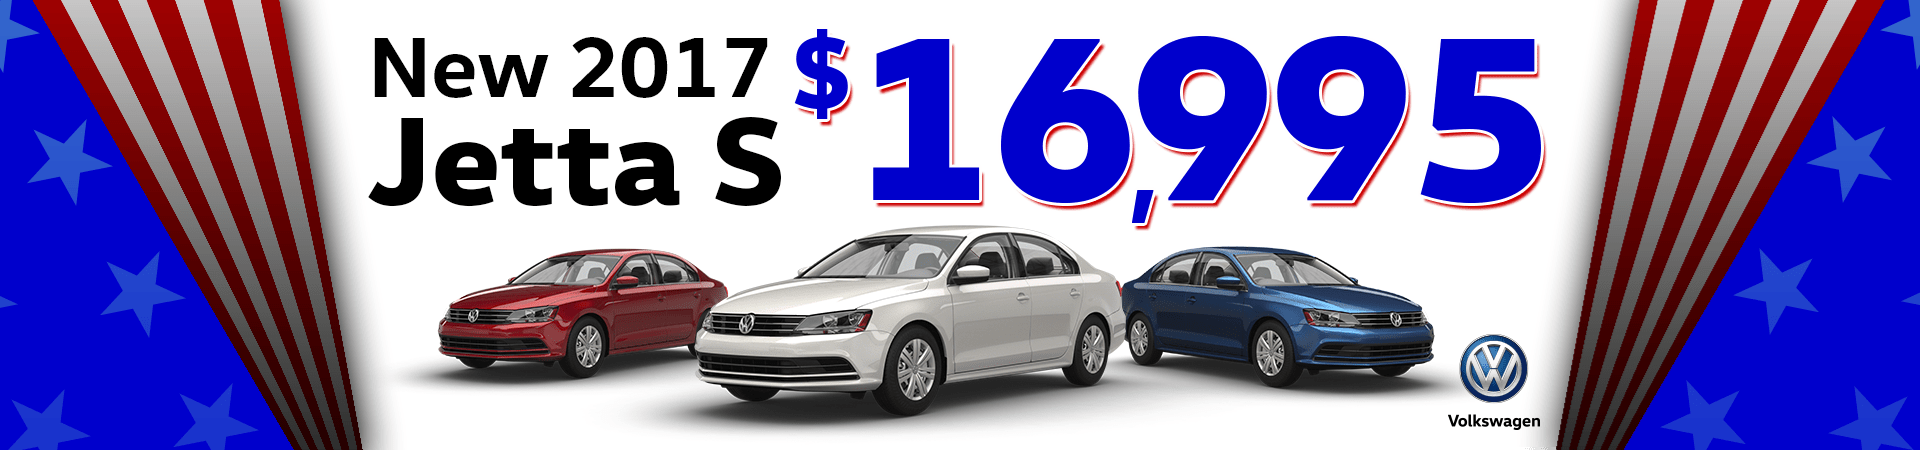 New 2017 Jetta Models Starting at $16995